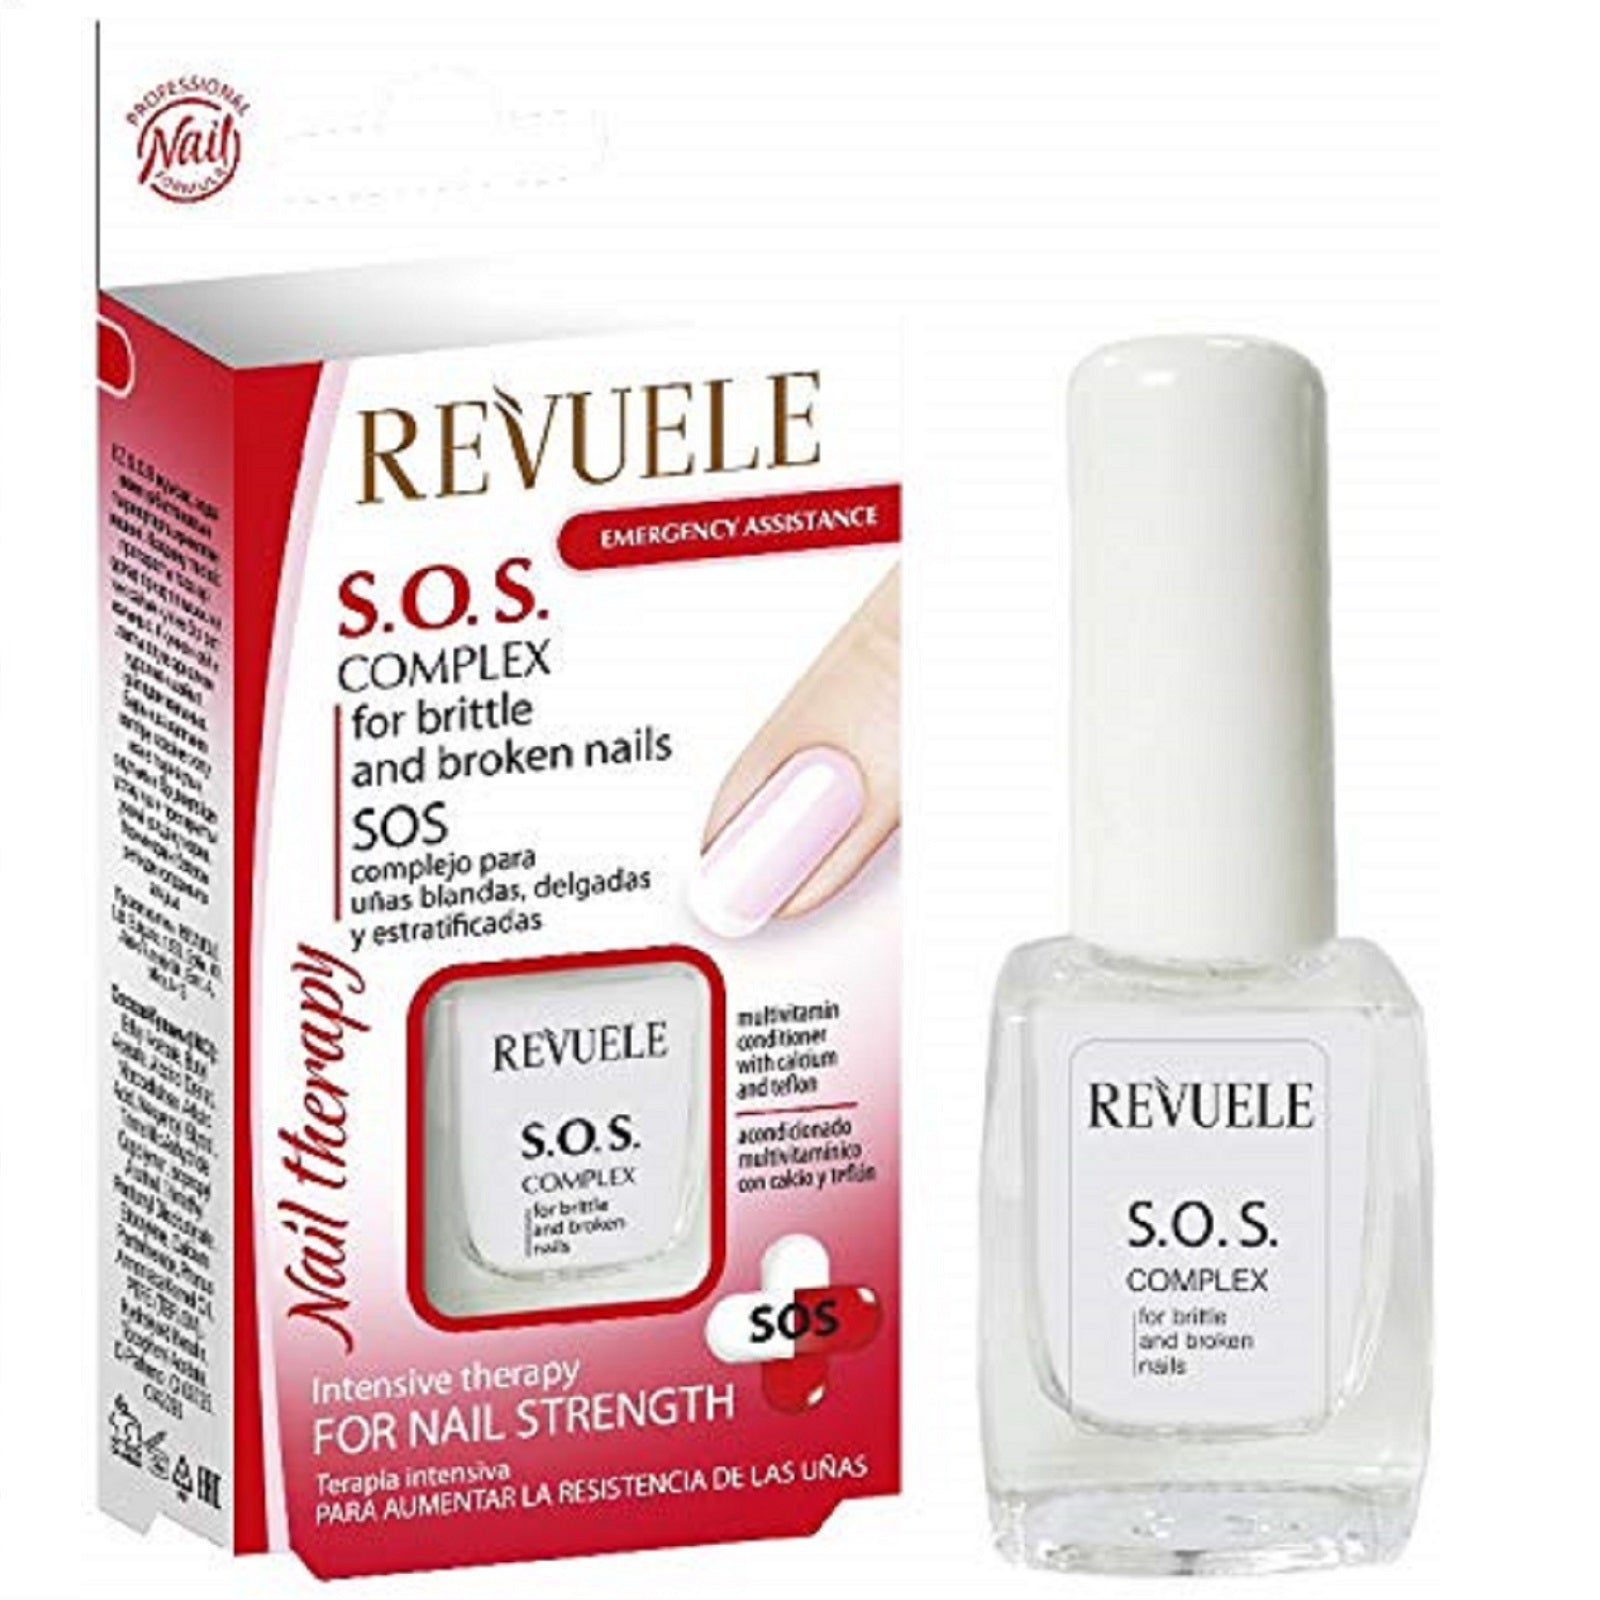 Revuele S.O.S. Complex For Brittle And Broken Nails